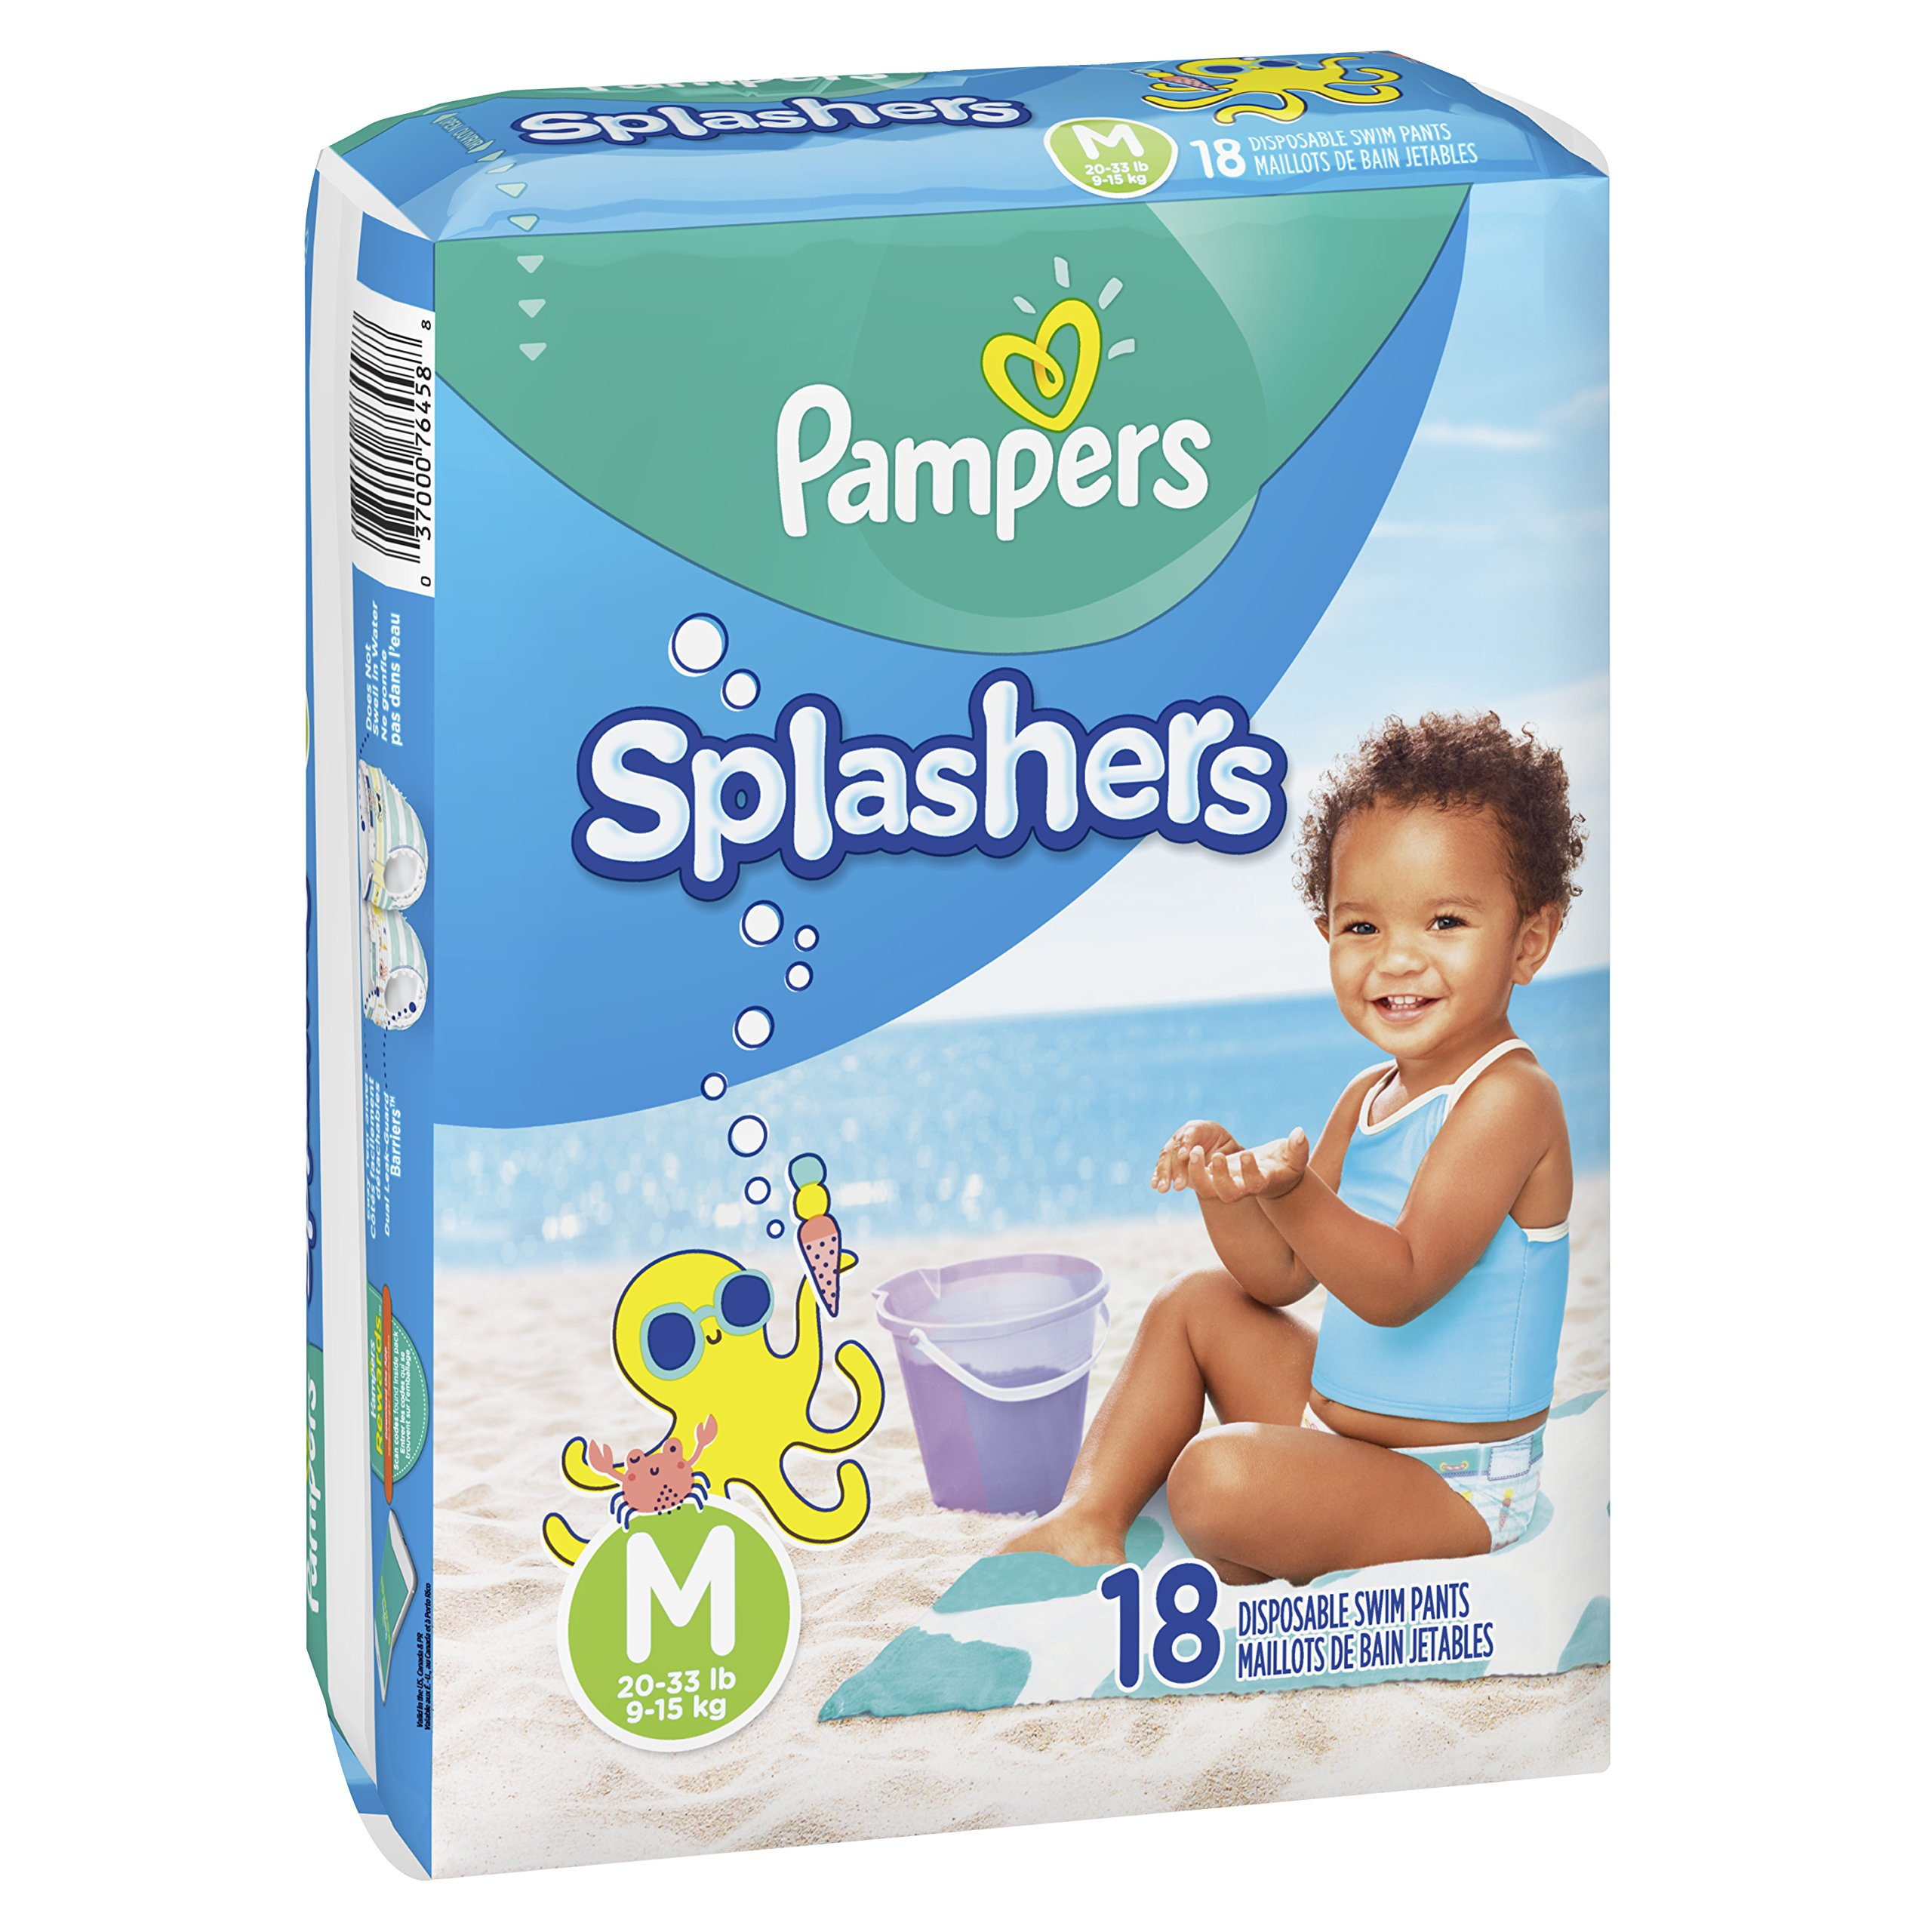 Swim Diapers Size 4 (20-33 lb), 18 Count - Pampers Splashers Disposable Swim Pants, Medium, Pack of 2 by Pampers